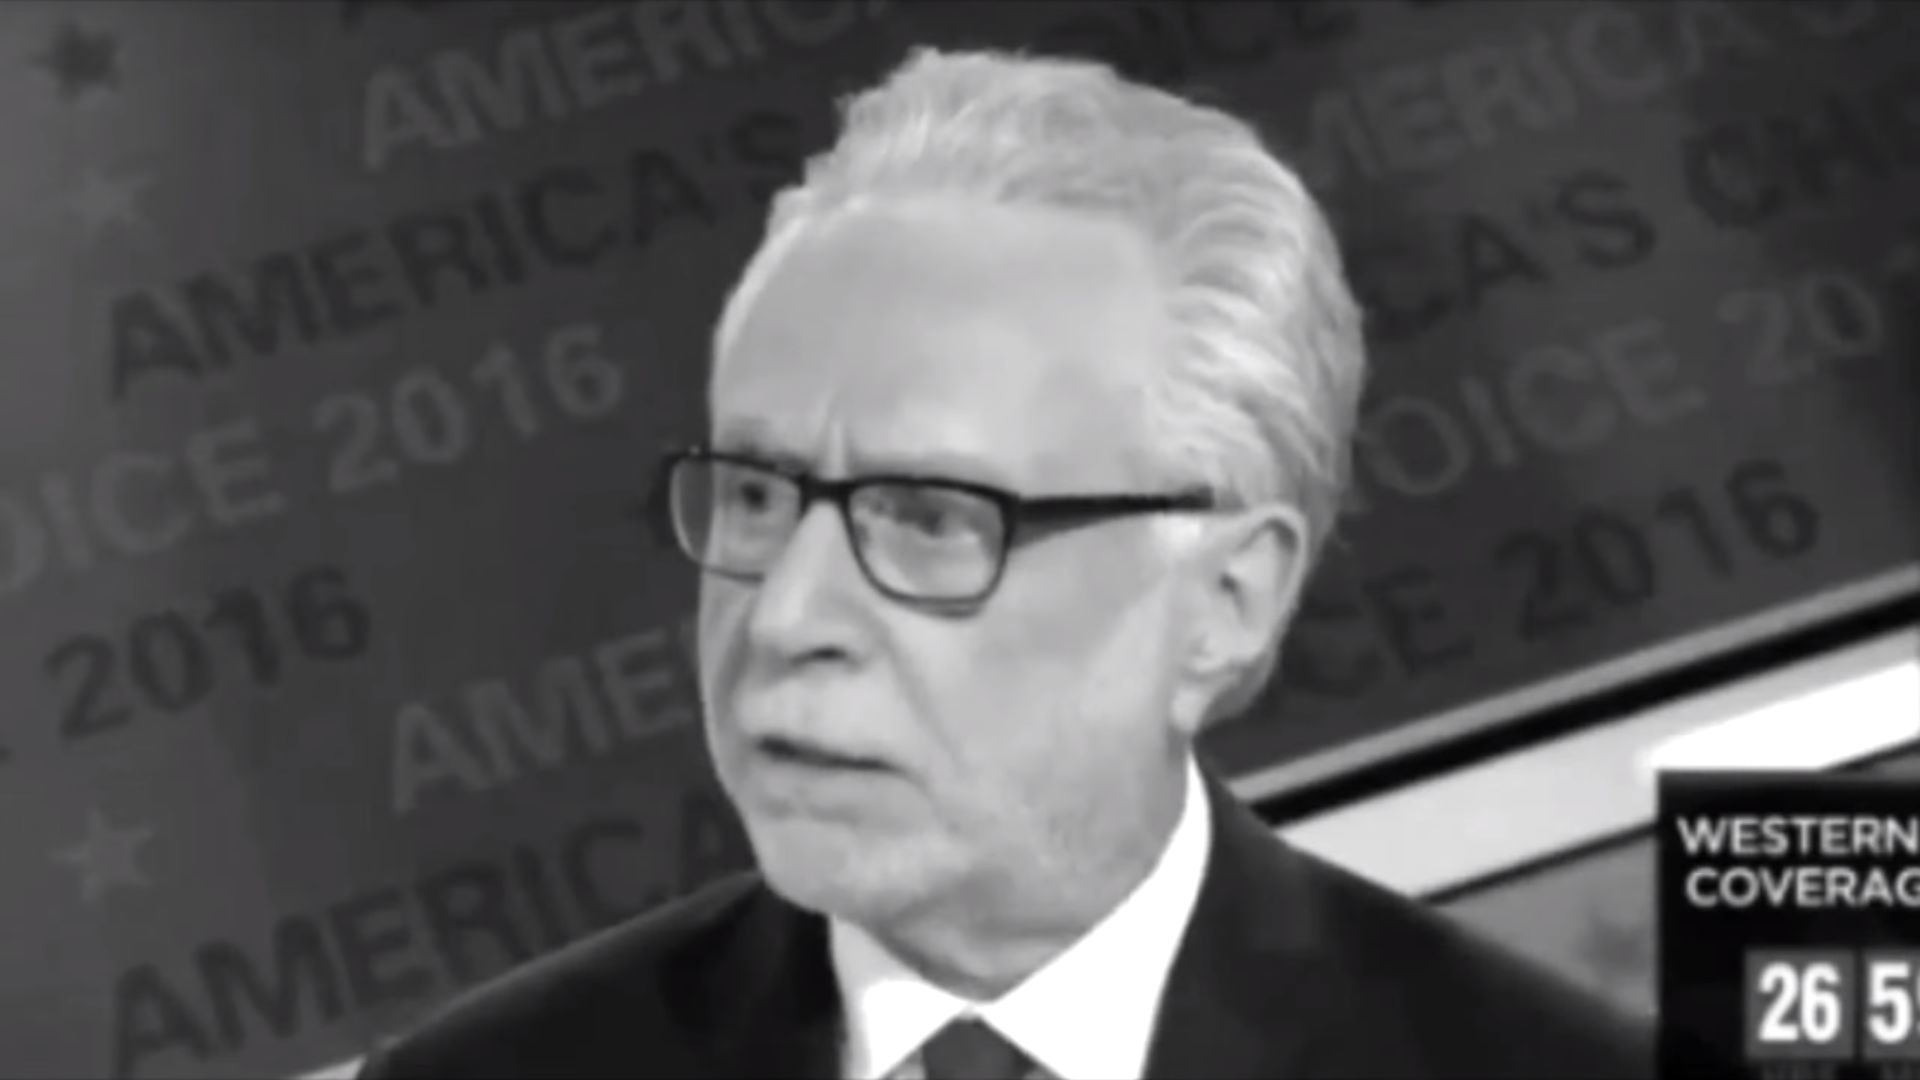 Rip Wolf Blitzer By Donald Trump 3 21 16 Blank Template Imgflip